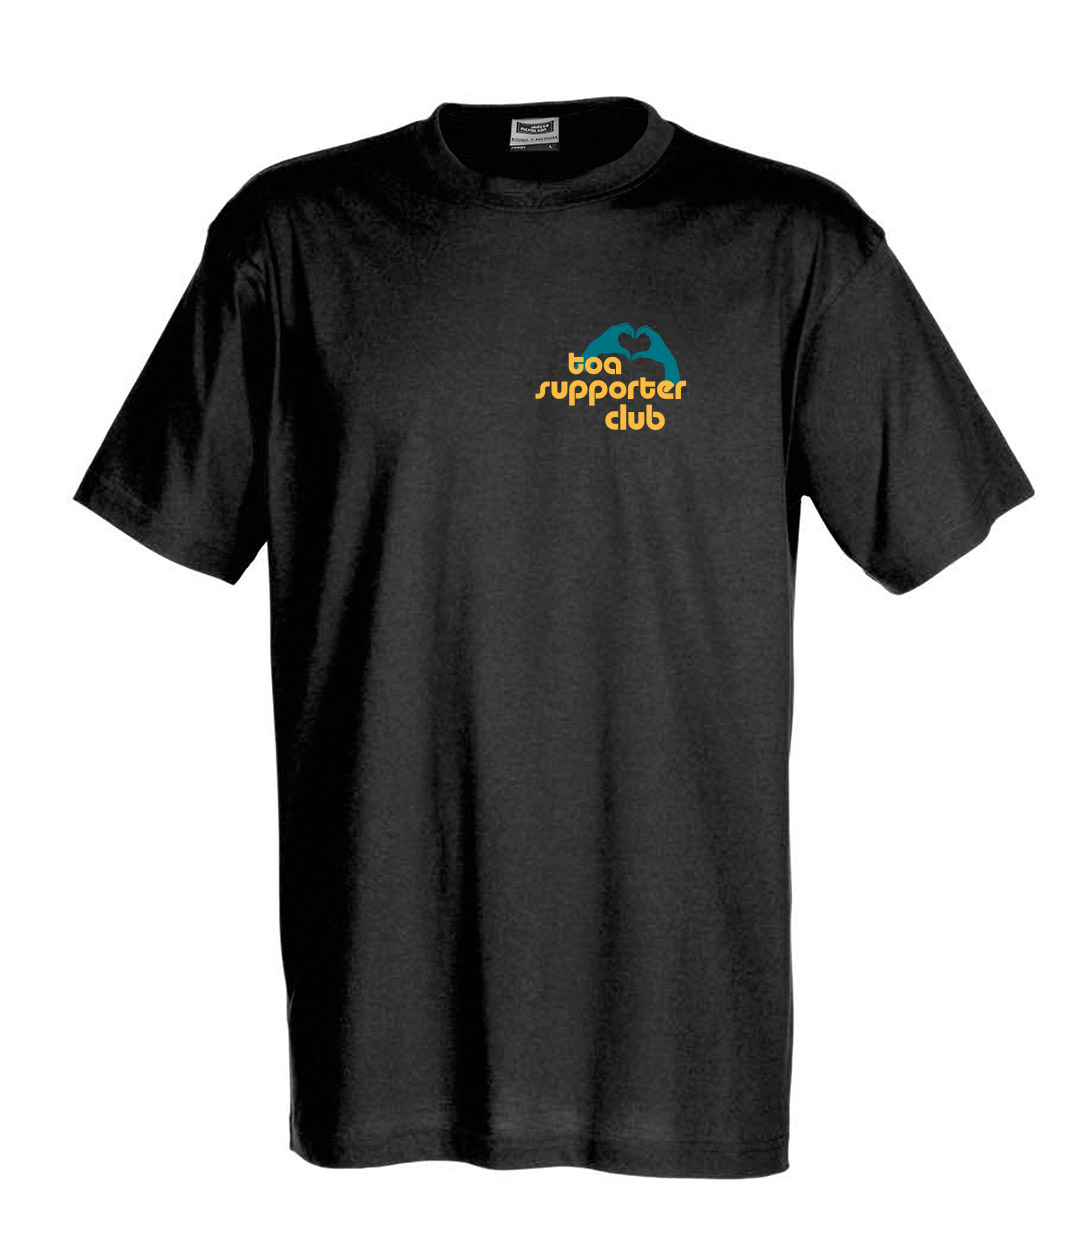 Toa Supporter Club Unisex T-Shirt